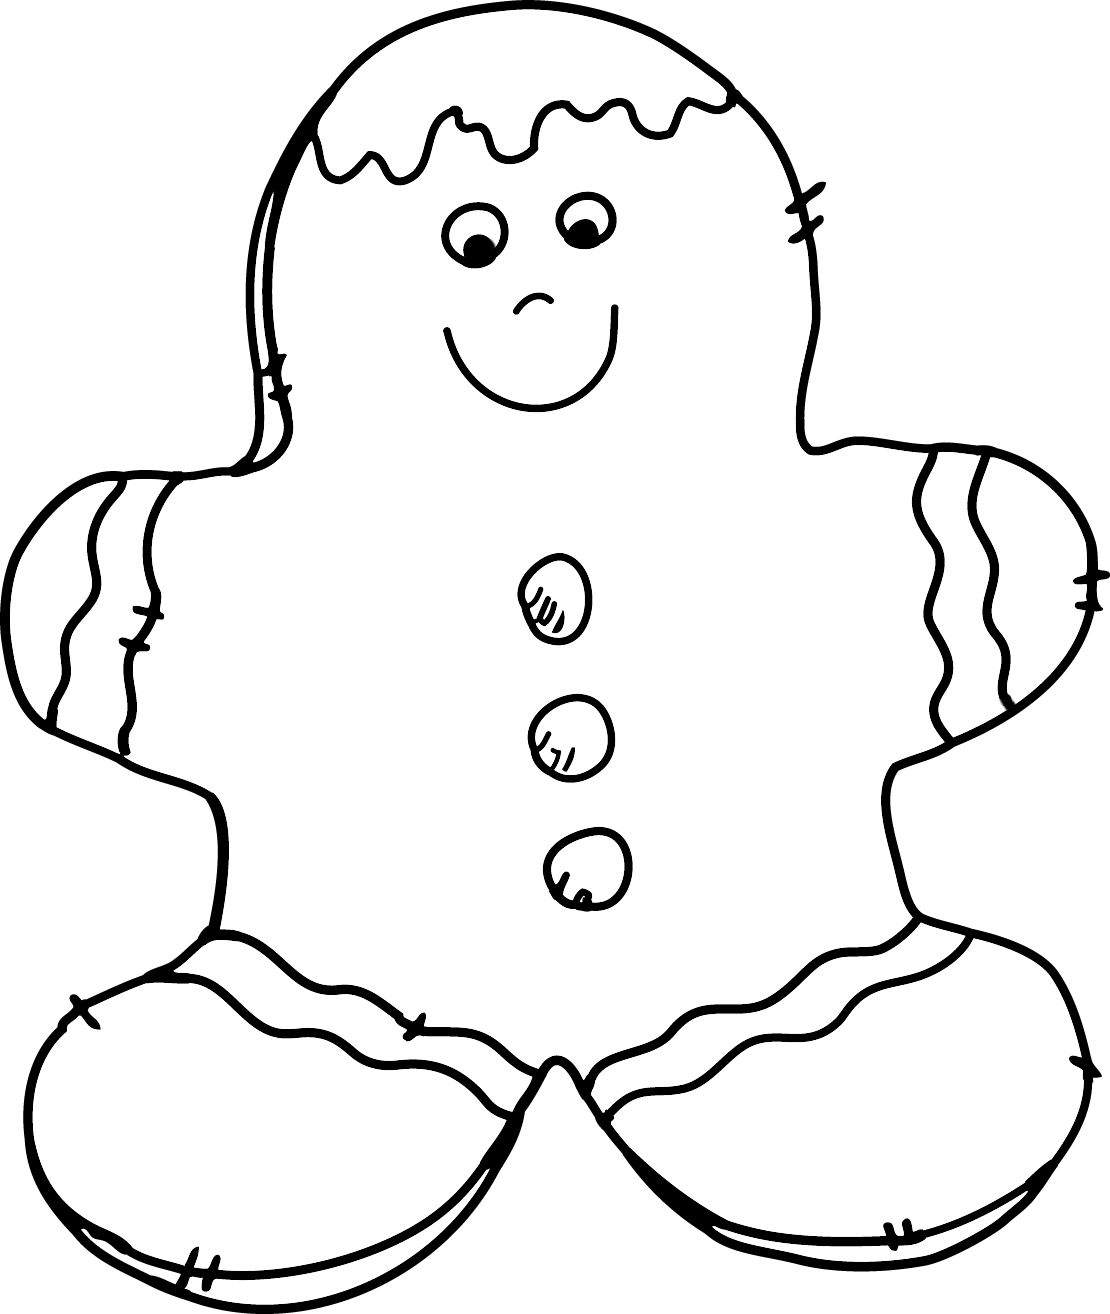 Christmas cookies clipart black and white clipart free stock Gingerbread Man Clipart | jokingart.com clipart free stock